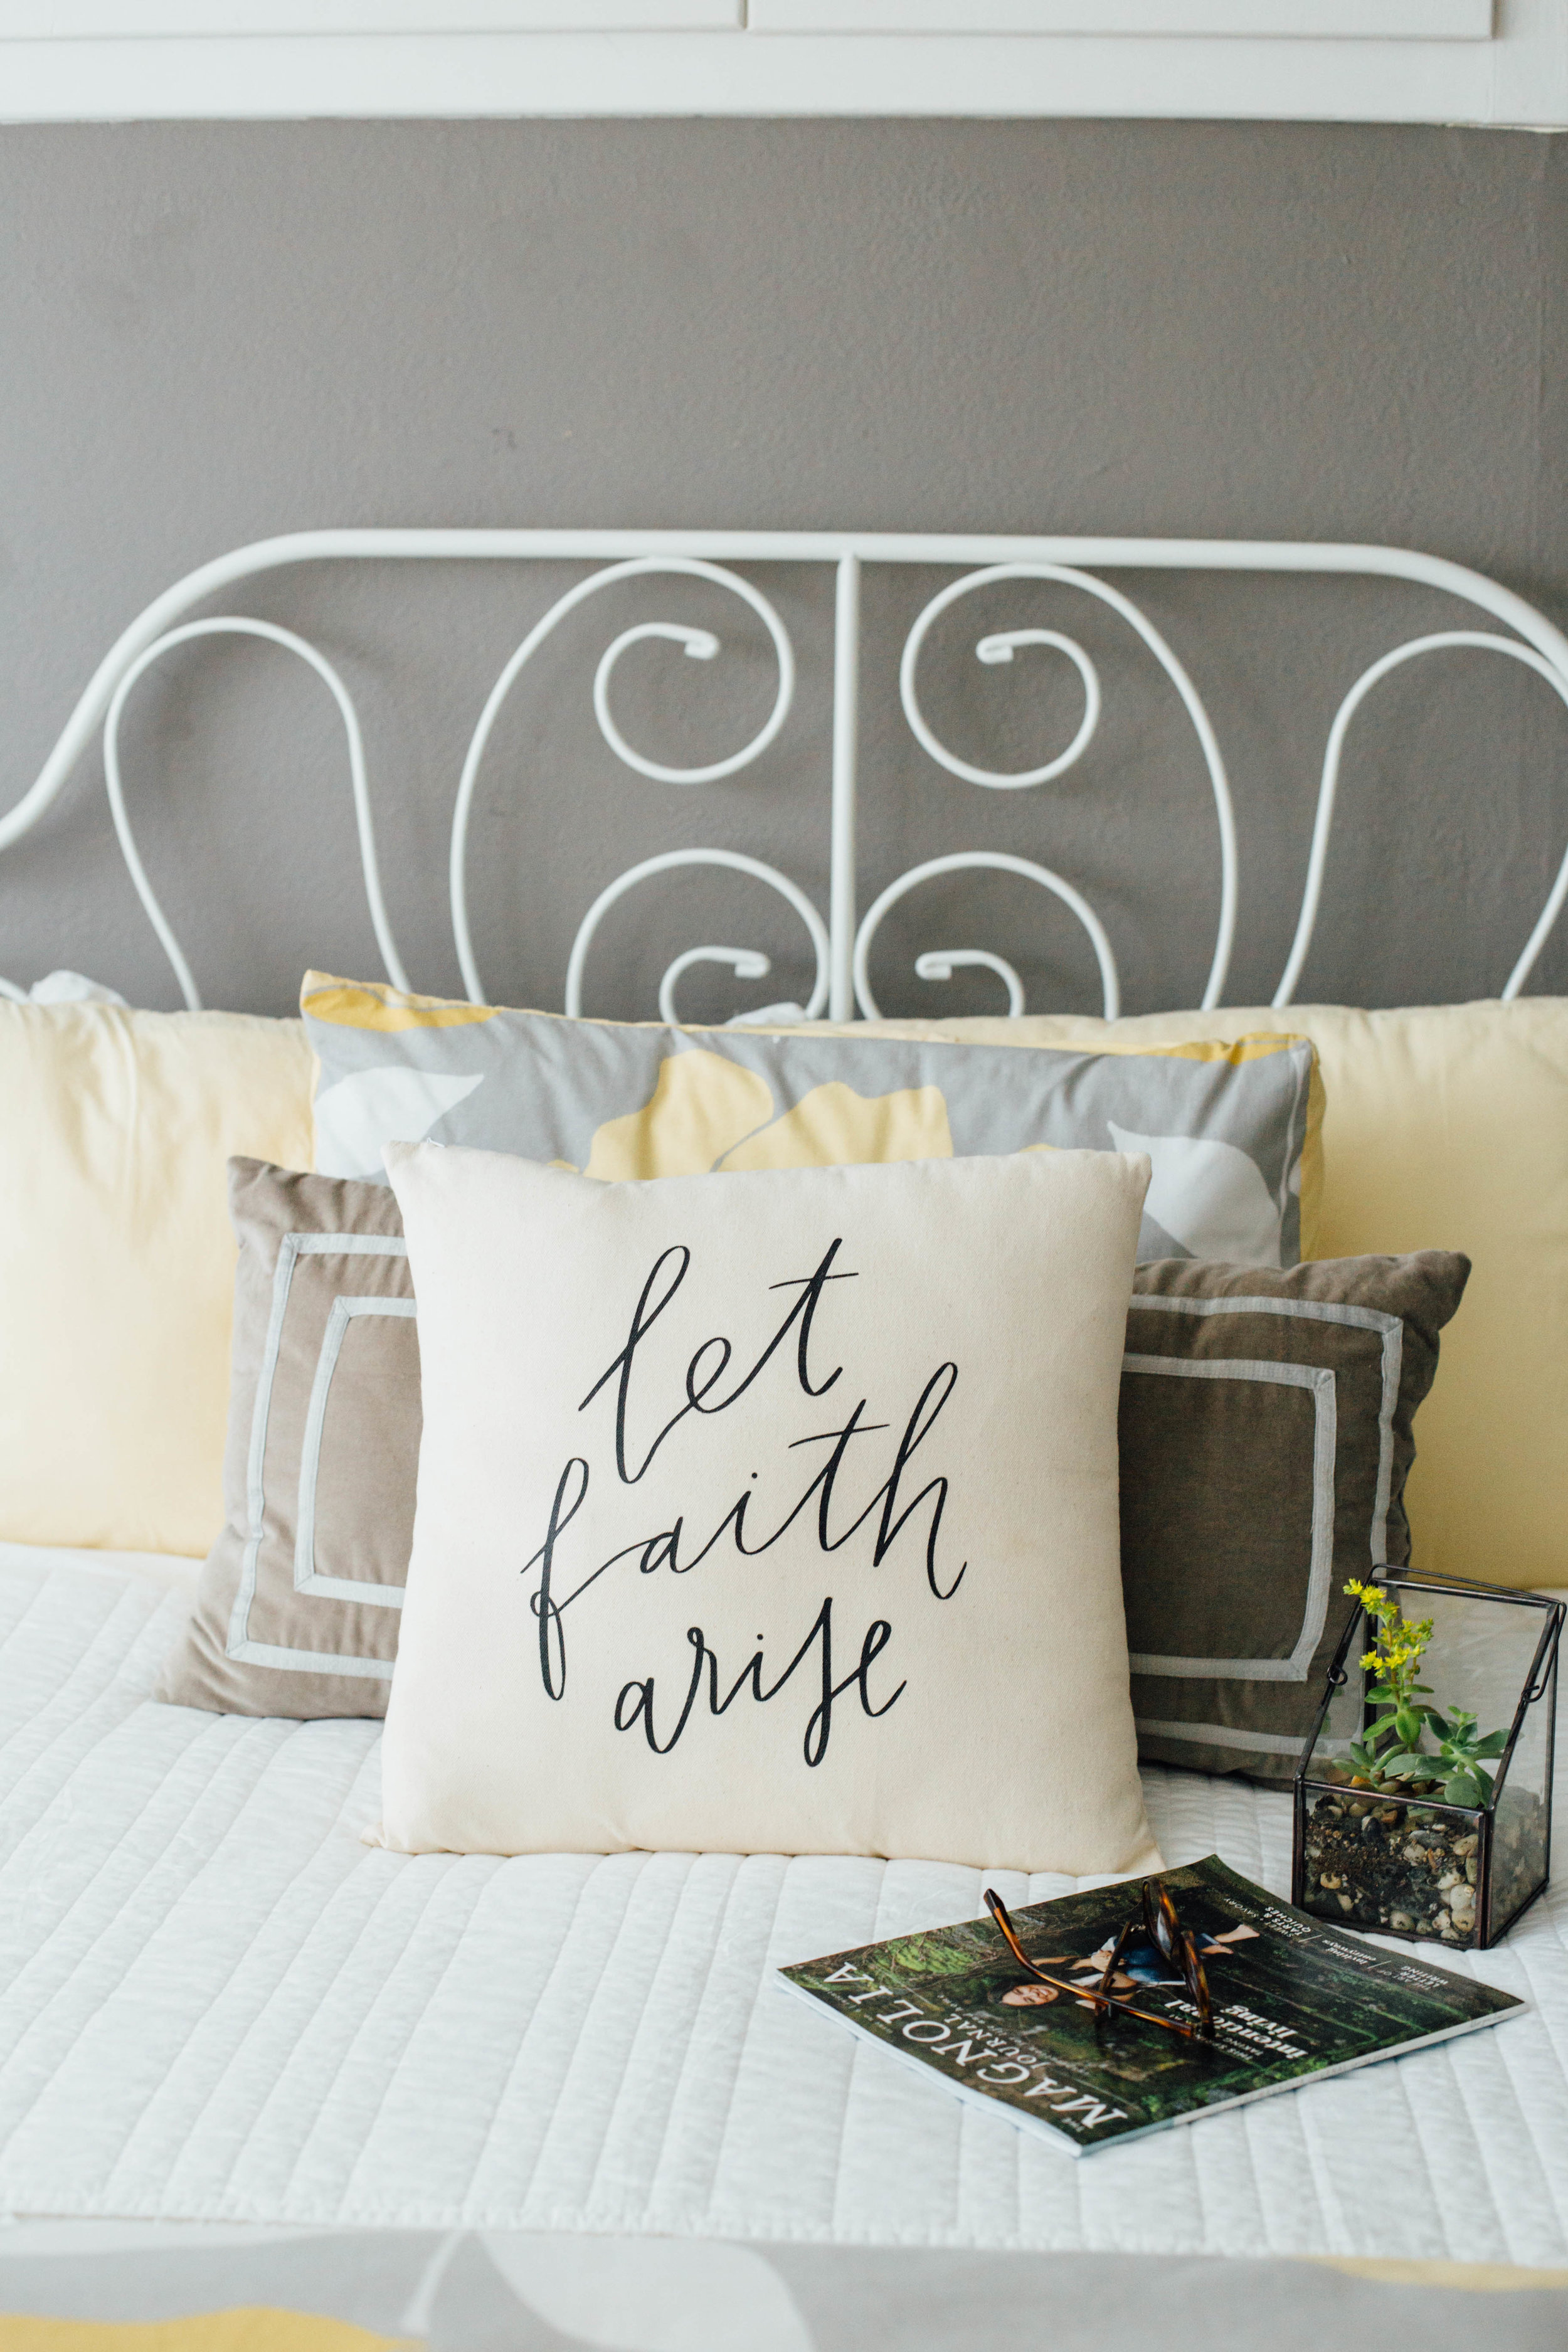 mothers-day-gift-idea-pillow.jpg